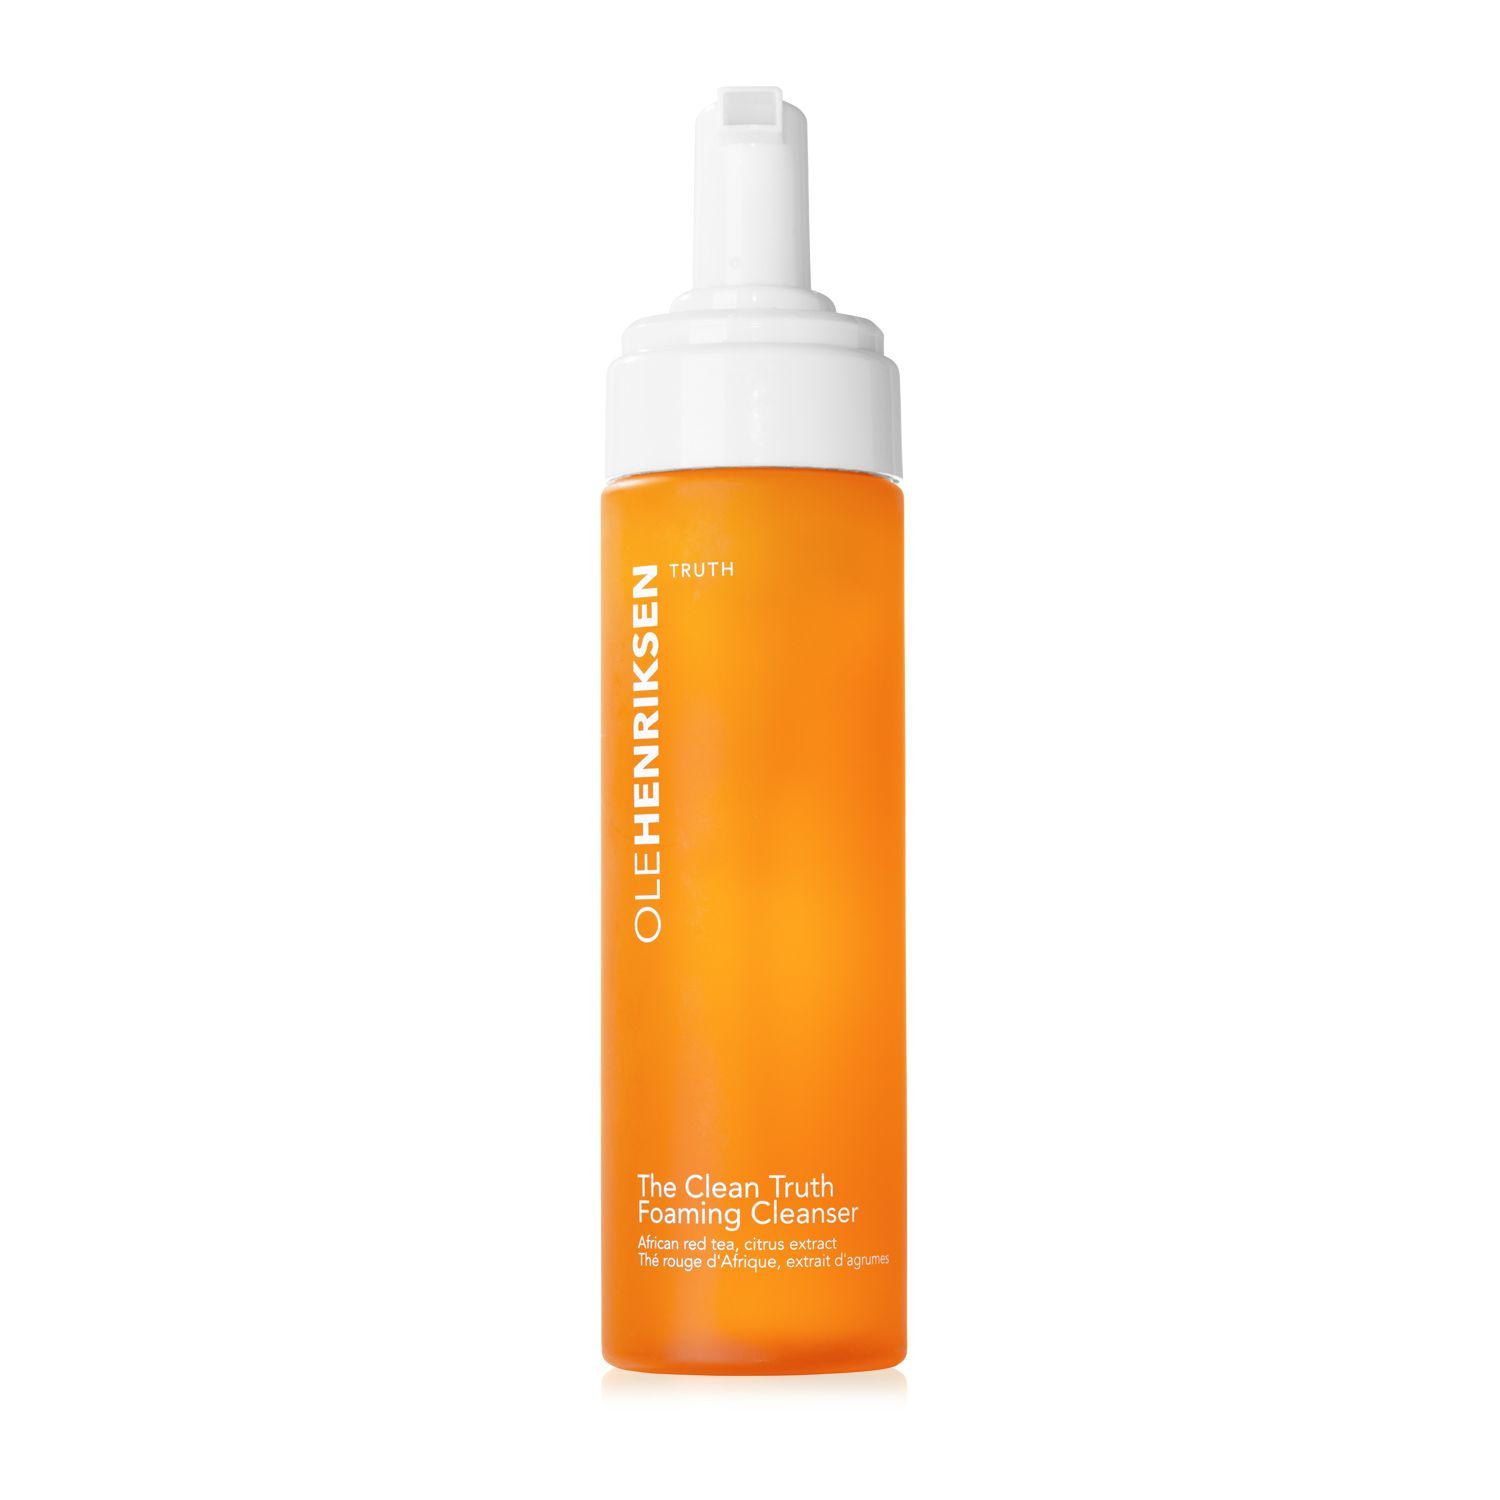 The Clean Truth Foaming Cleanser Olehenriksen Clear Face Wash 100ml